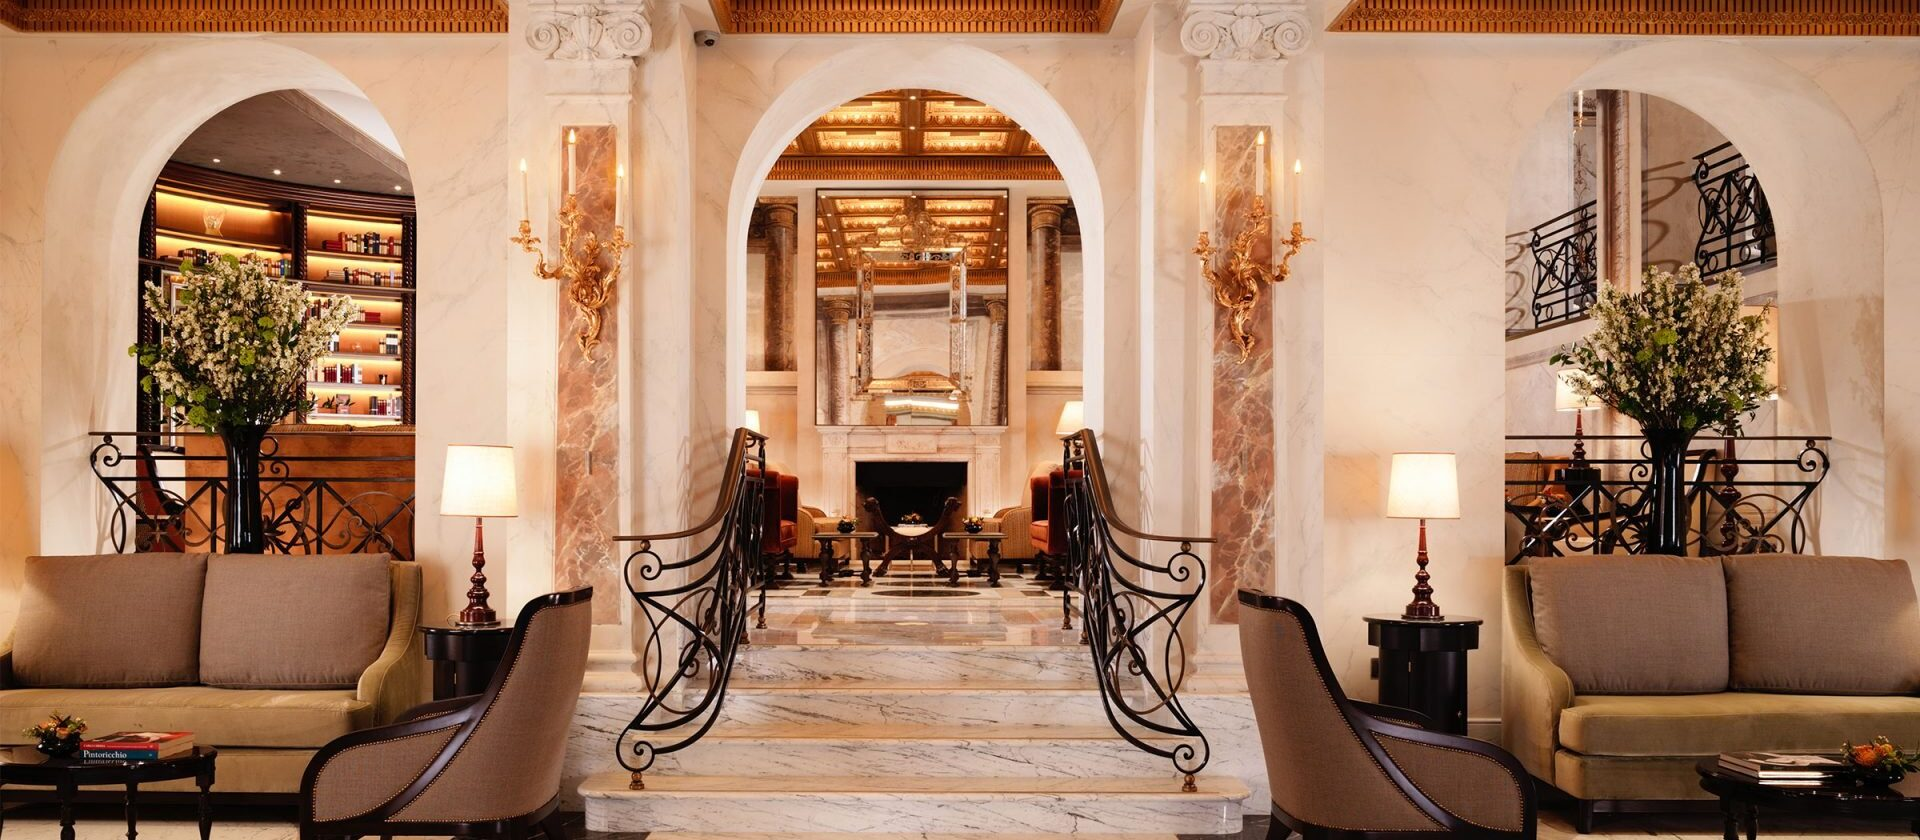 Hotel Eden Rome 5 Star Luxury Hotel Dorchester Collection